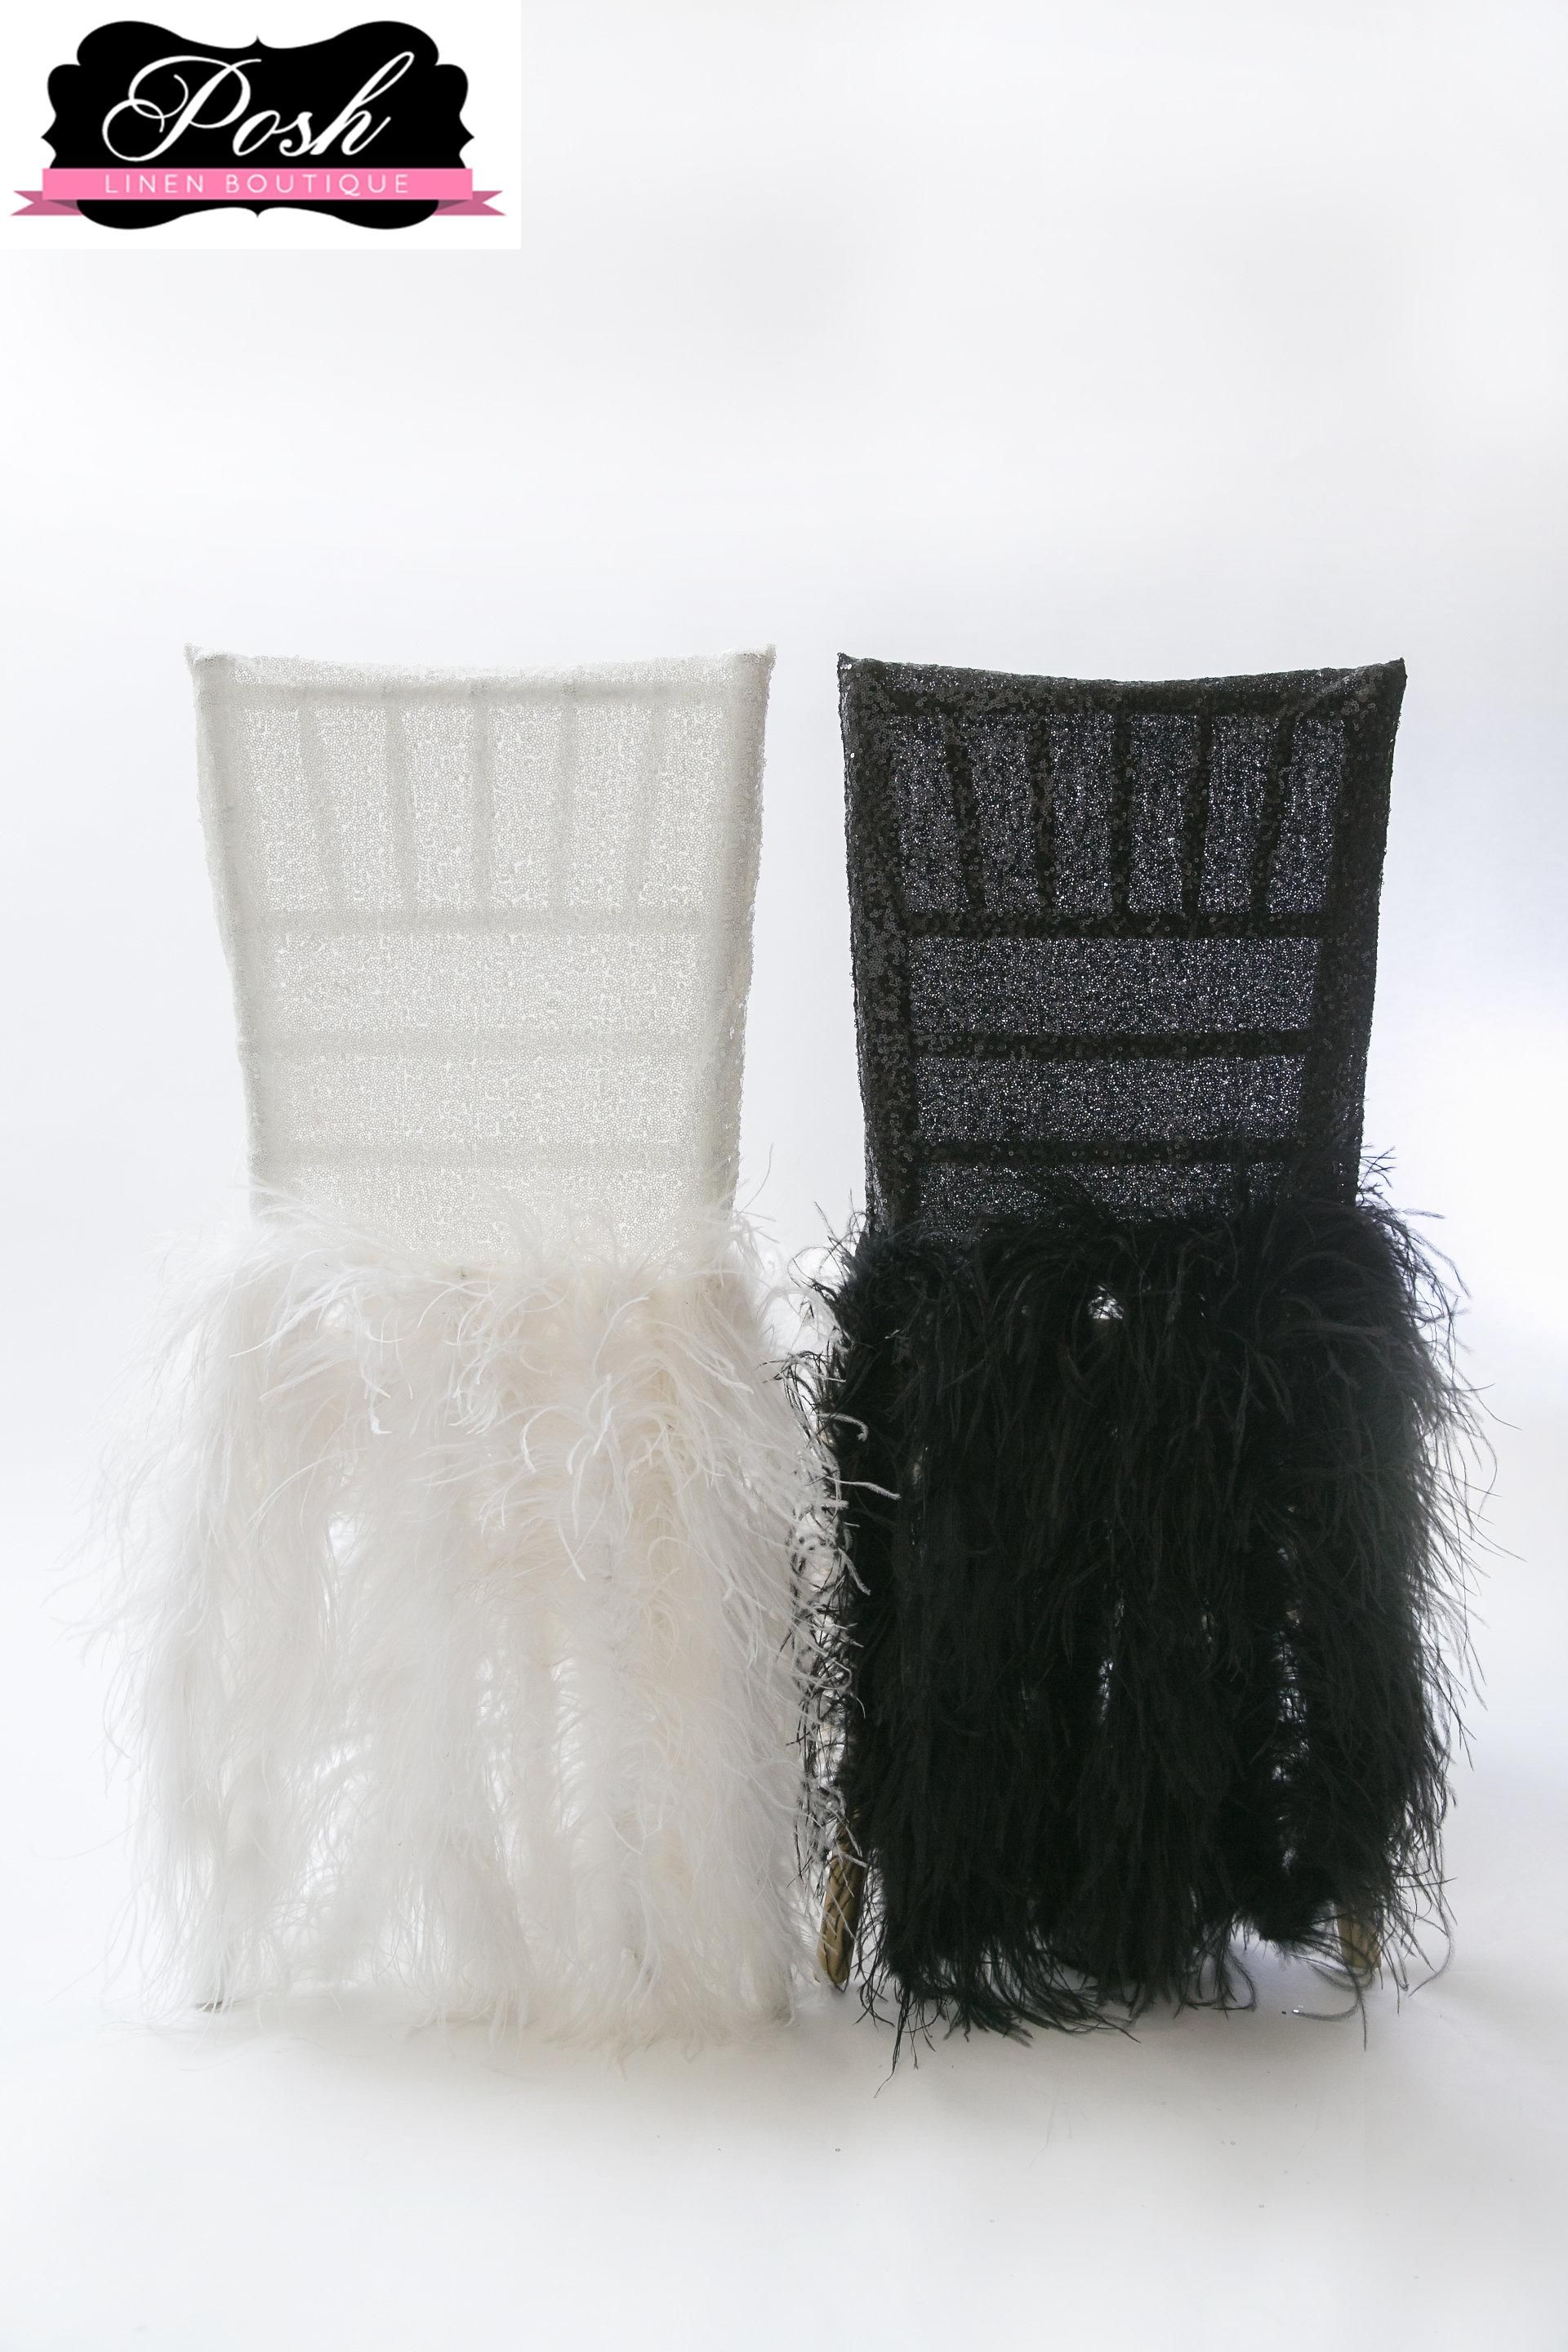 white chair covers amazon swing chairs for bedrooms now on sale sequin topper paired with faux ostrich feathers make this an unforgettable cover featured black